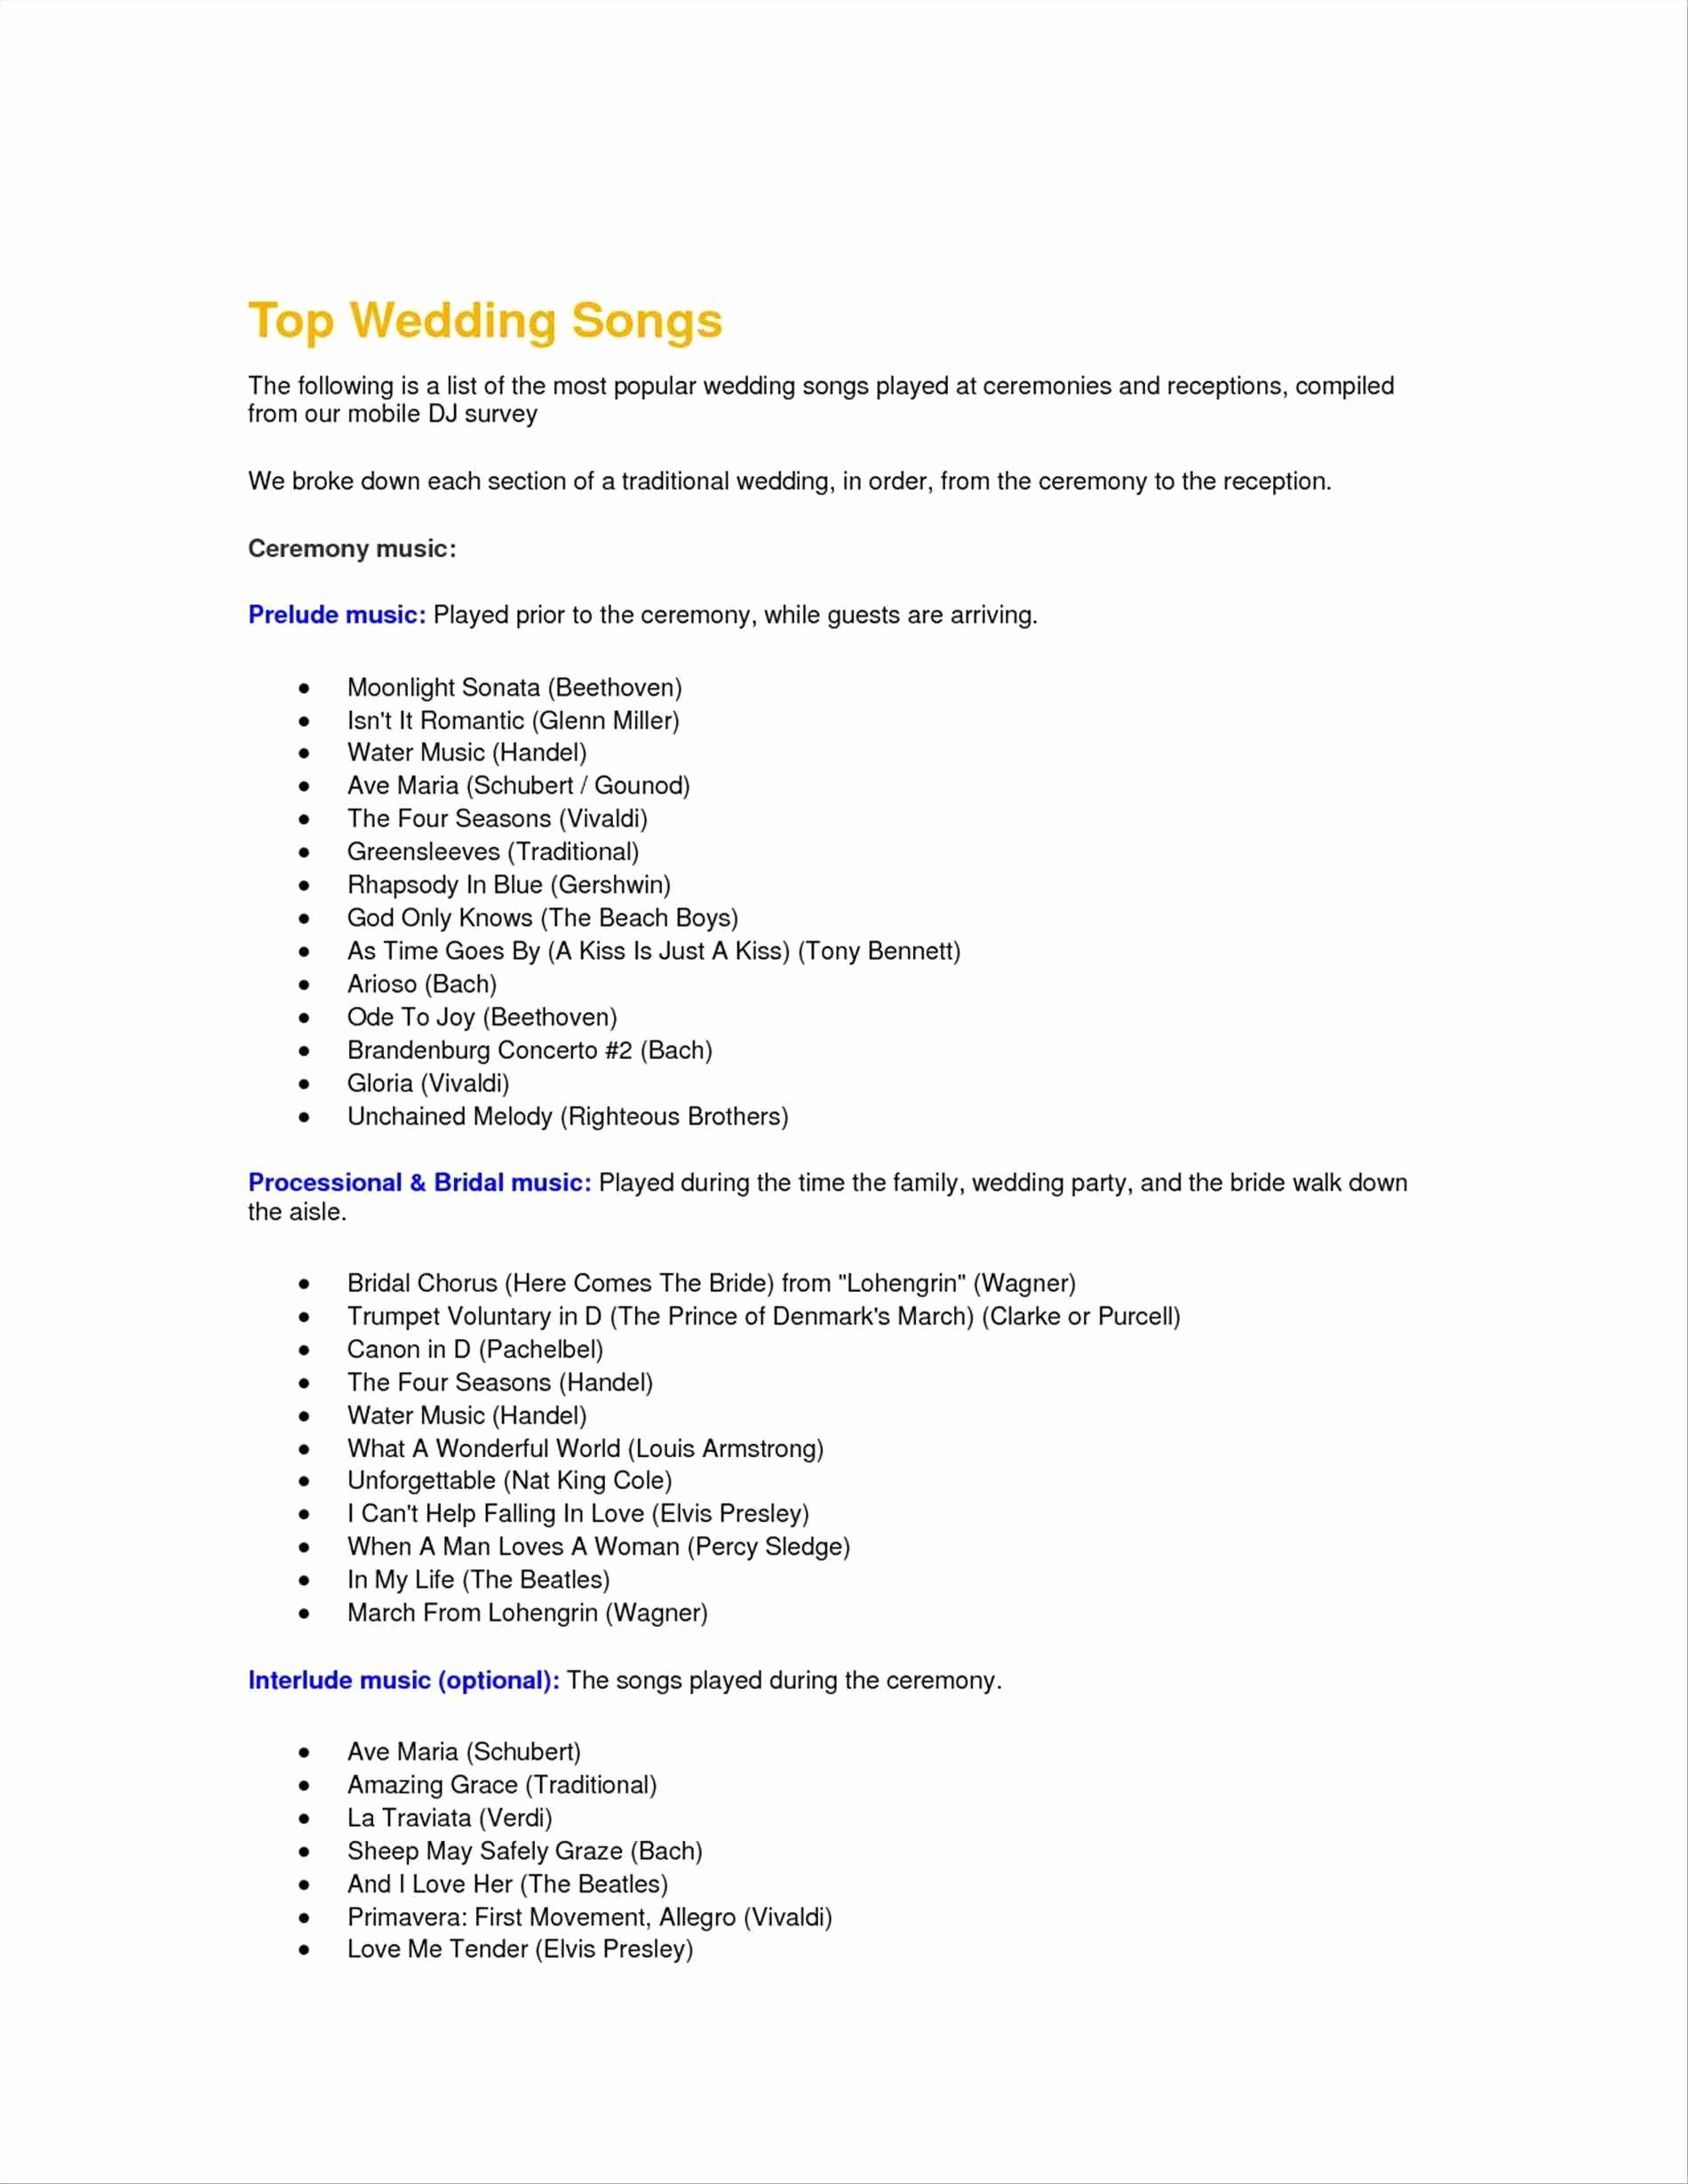 Wedding Ceremony song List Template Awesome List Wedding Ceremony songs